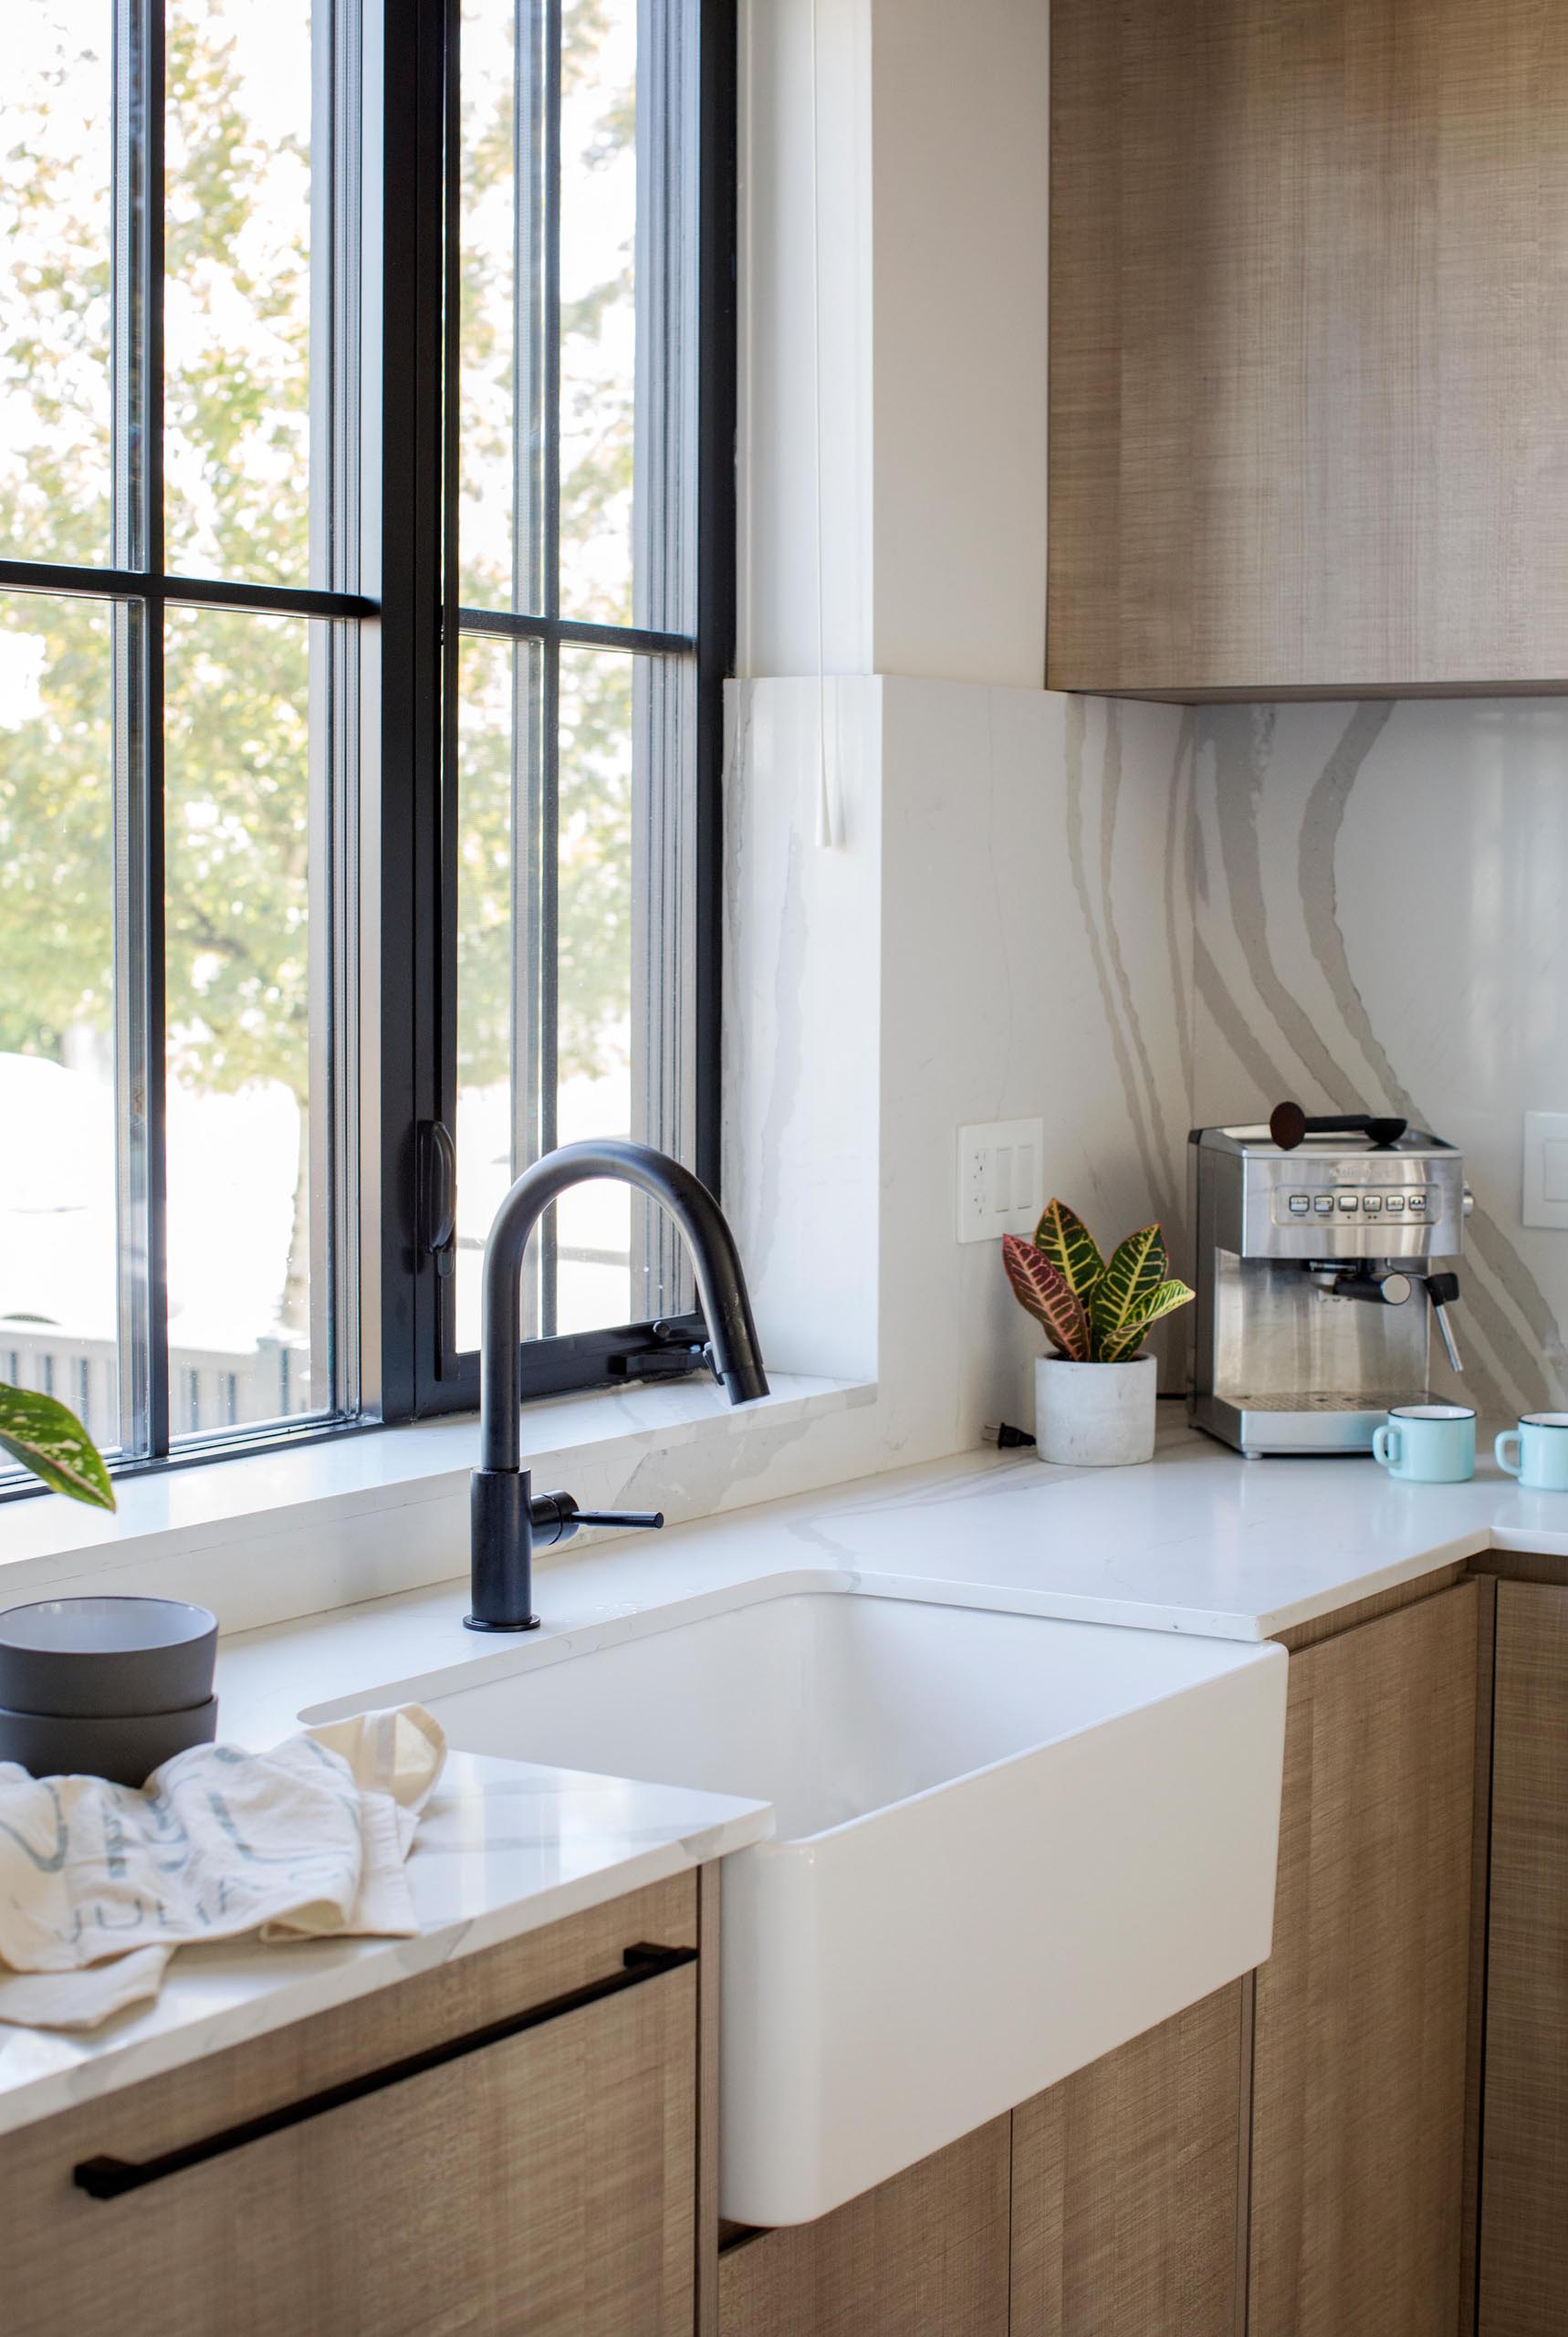 A modern kitchen with an apron front sink, light countertops, and wood cabinets.